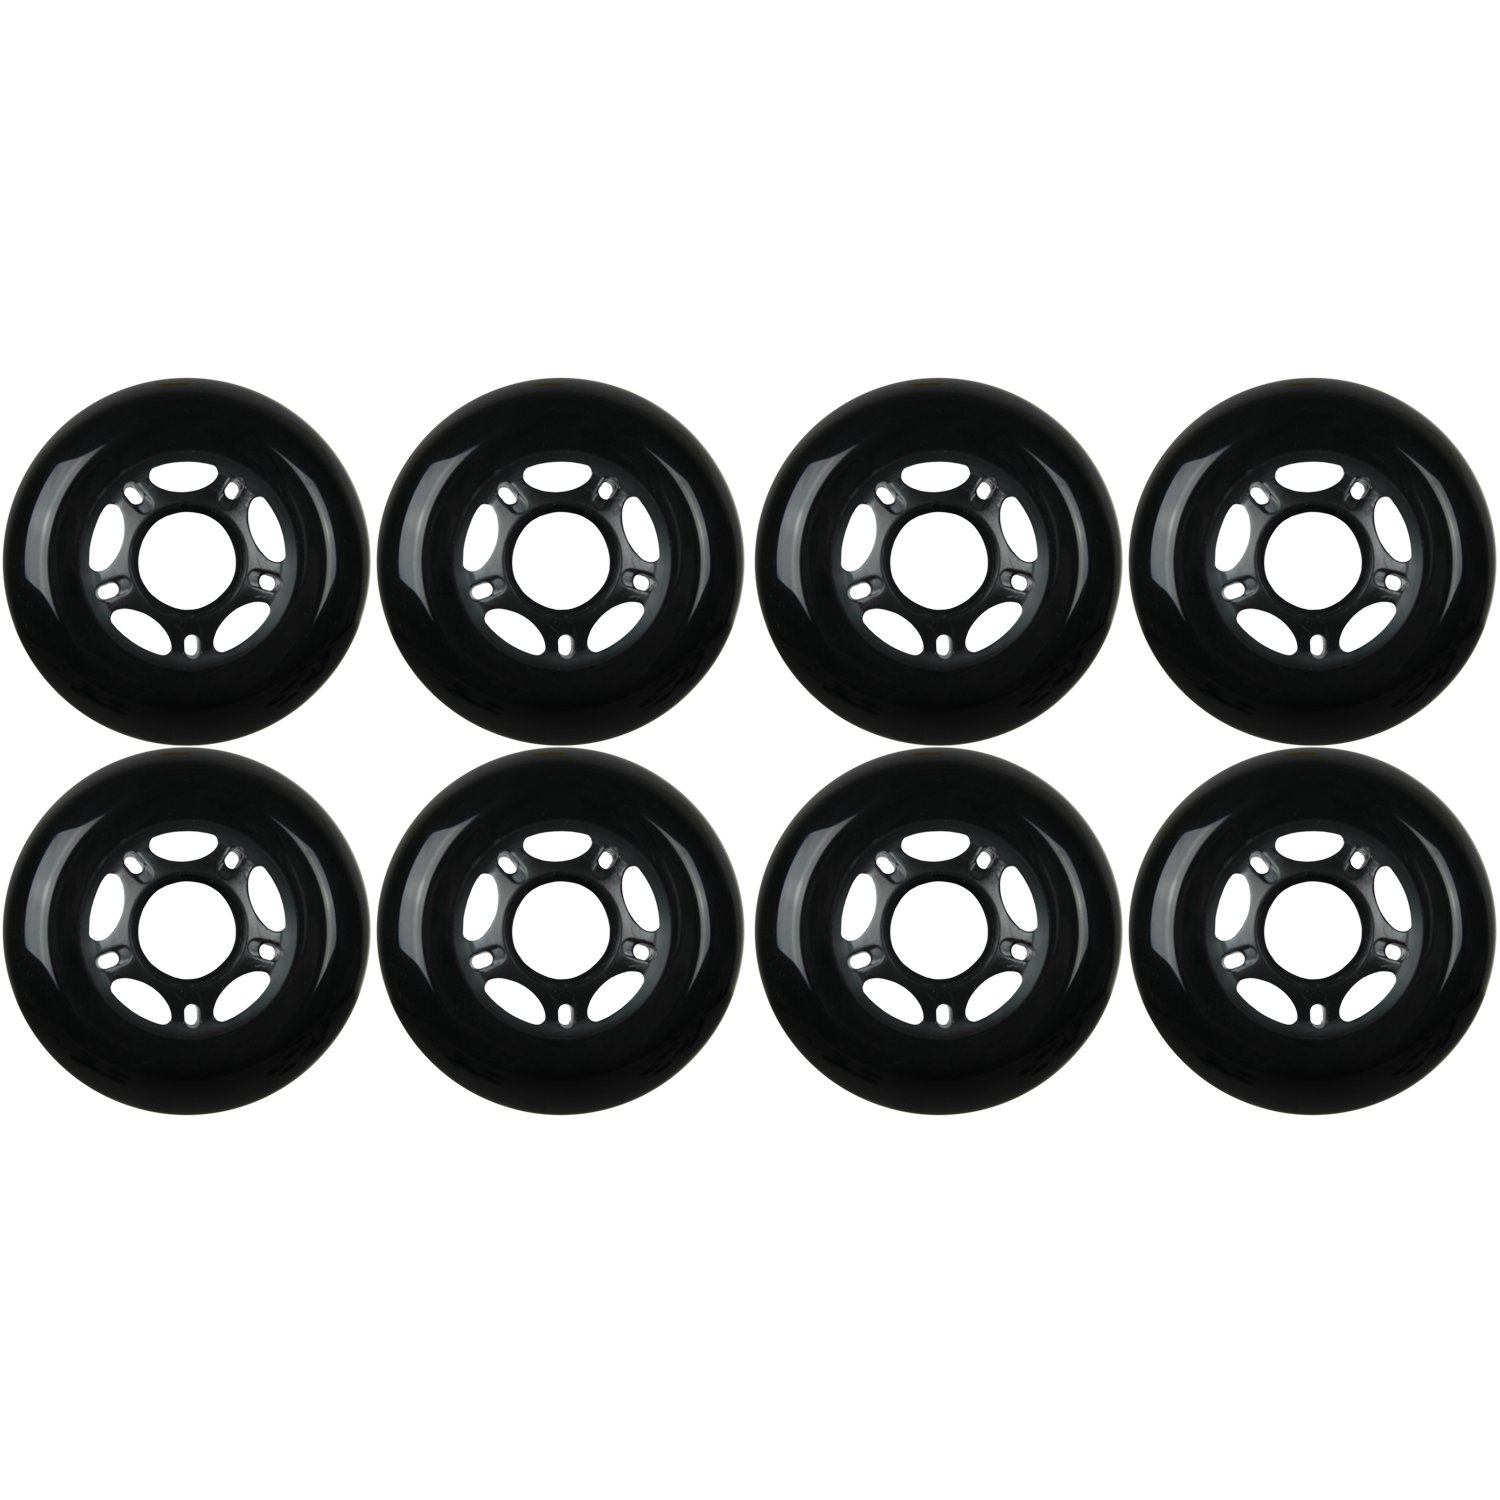 KSS Outdoor Asphalt Formula 89A Inline Skate X8 Wheels, Black, 80mm by KSS